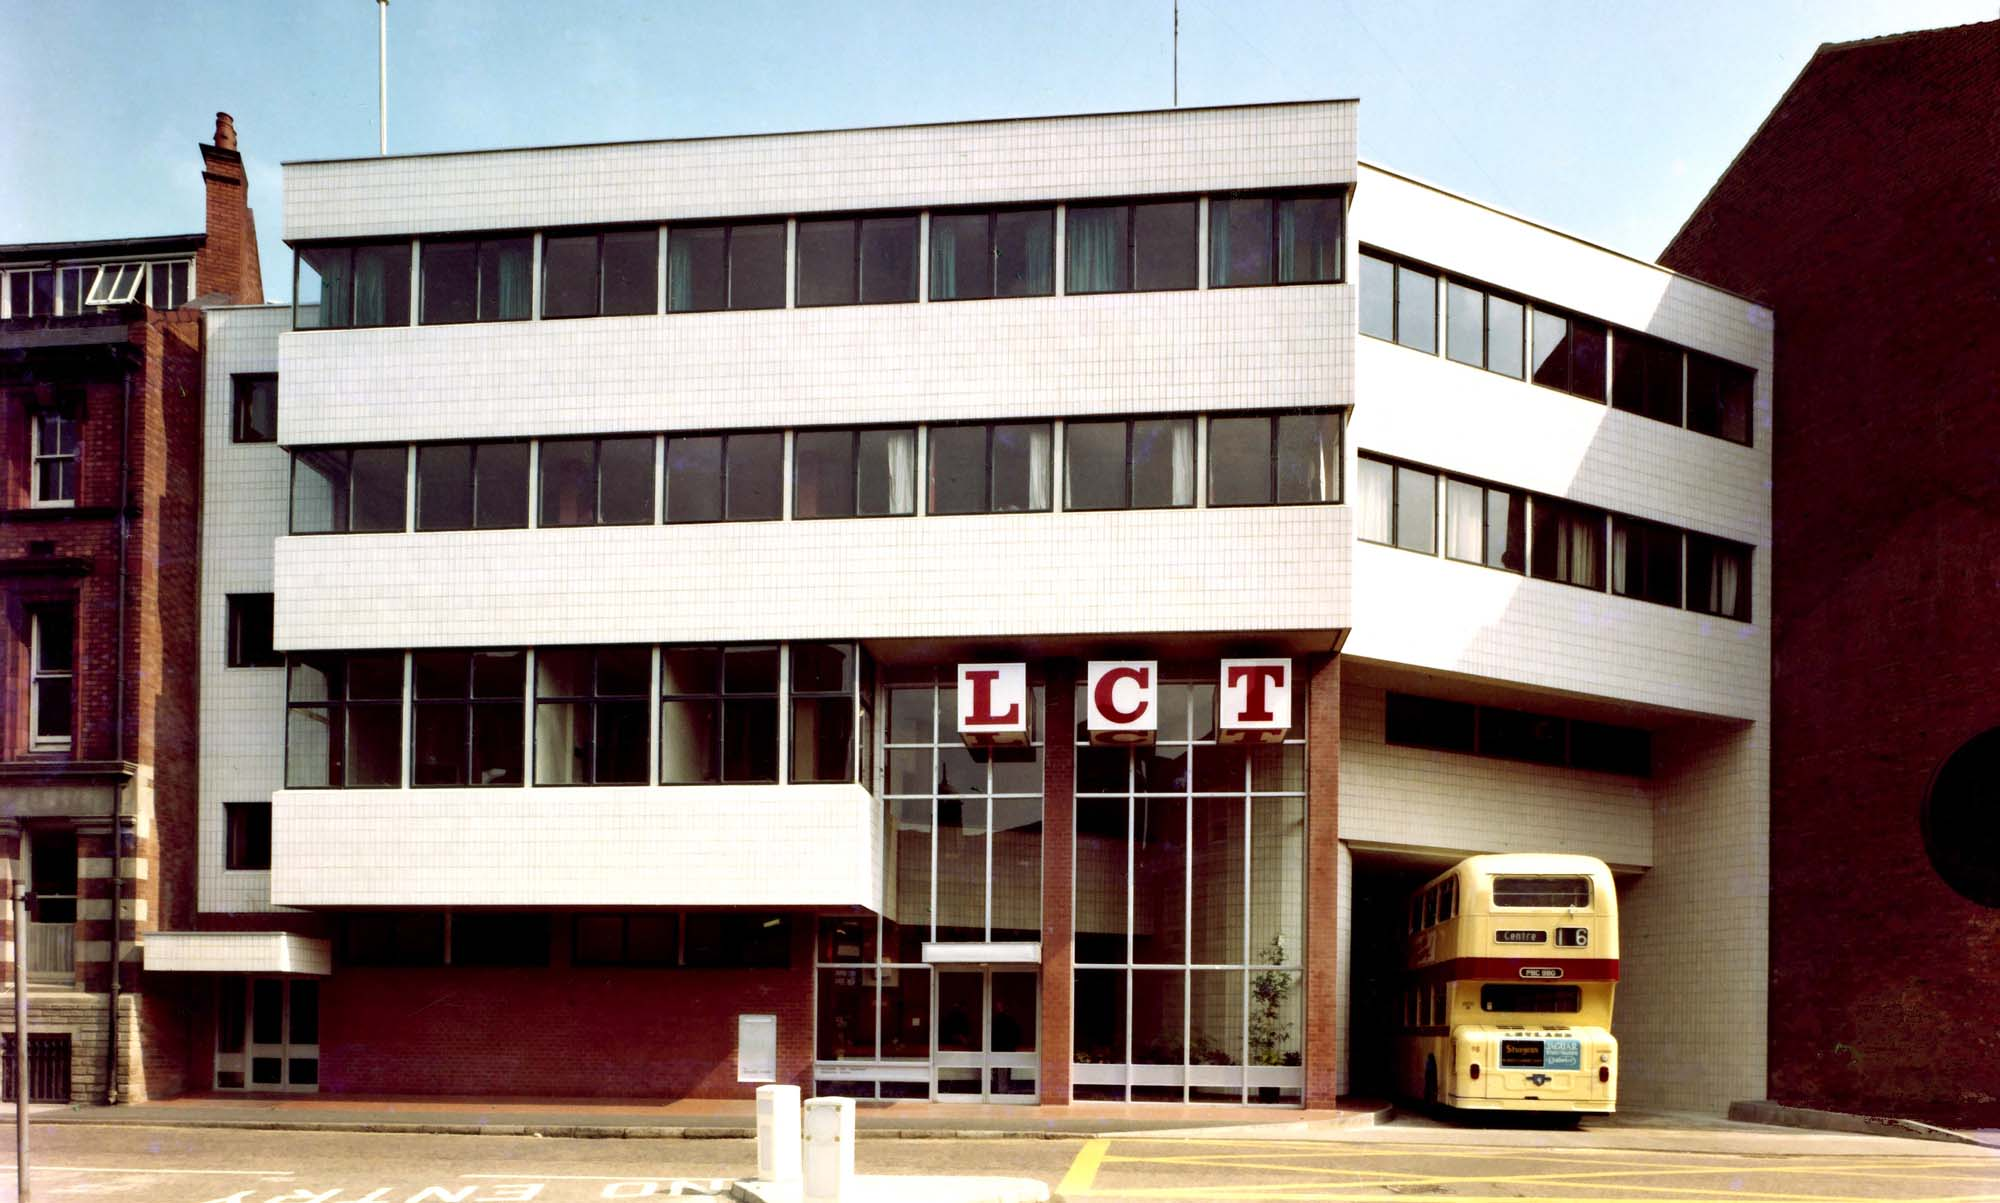 Leicester City Transport Operating Centre 1969 - Leicester Transport Heritage Trust, Rob Haywood and Keith Wood